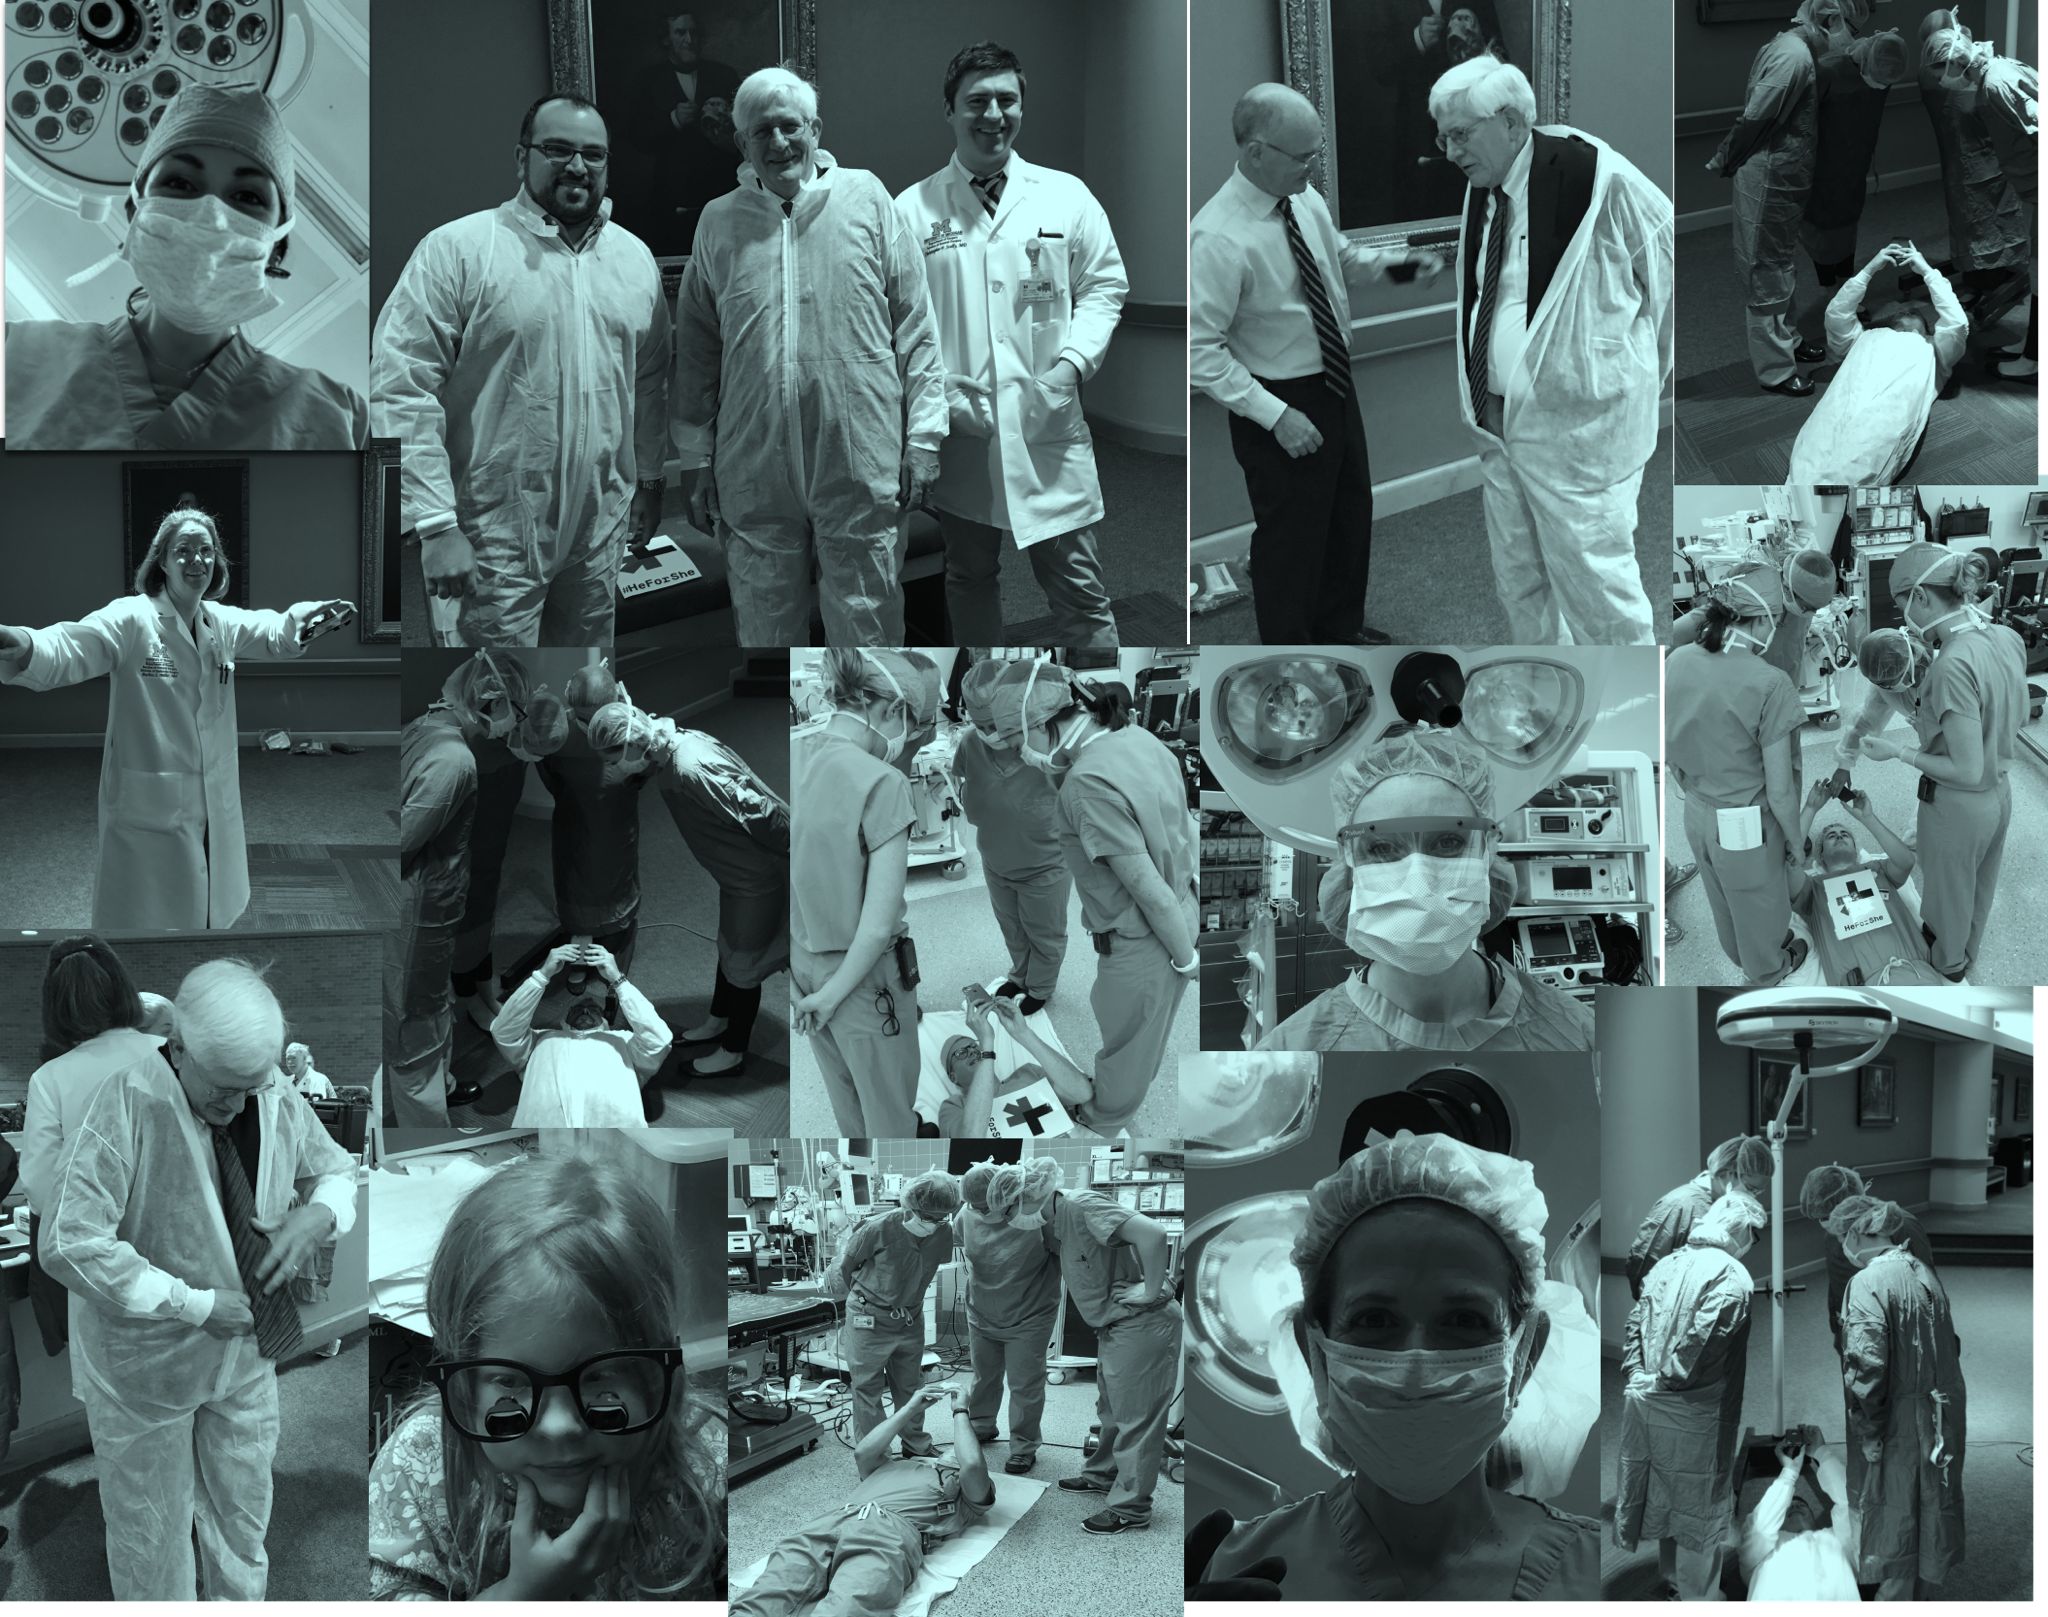 Collage of surgeons preparing to re-create the New Yorker cover image